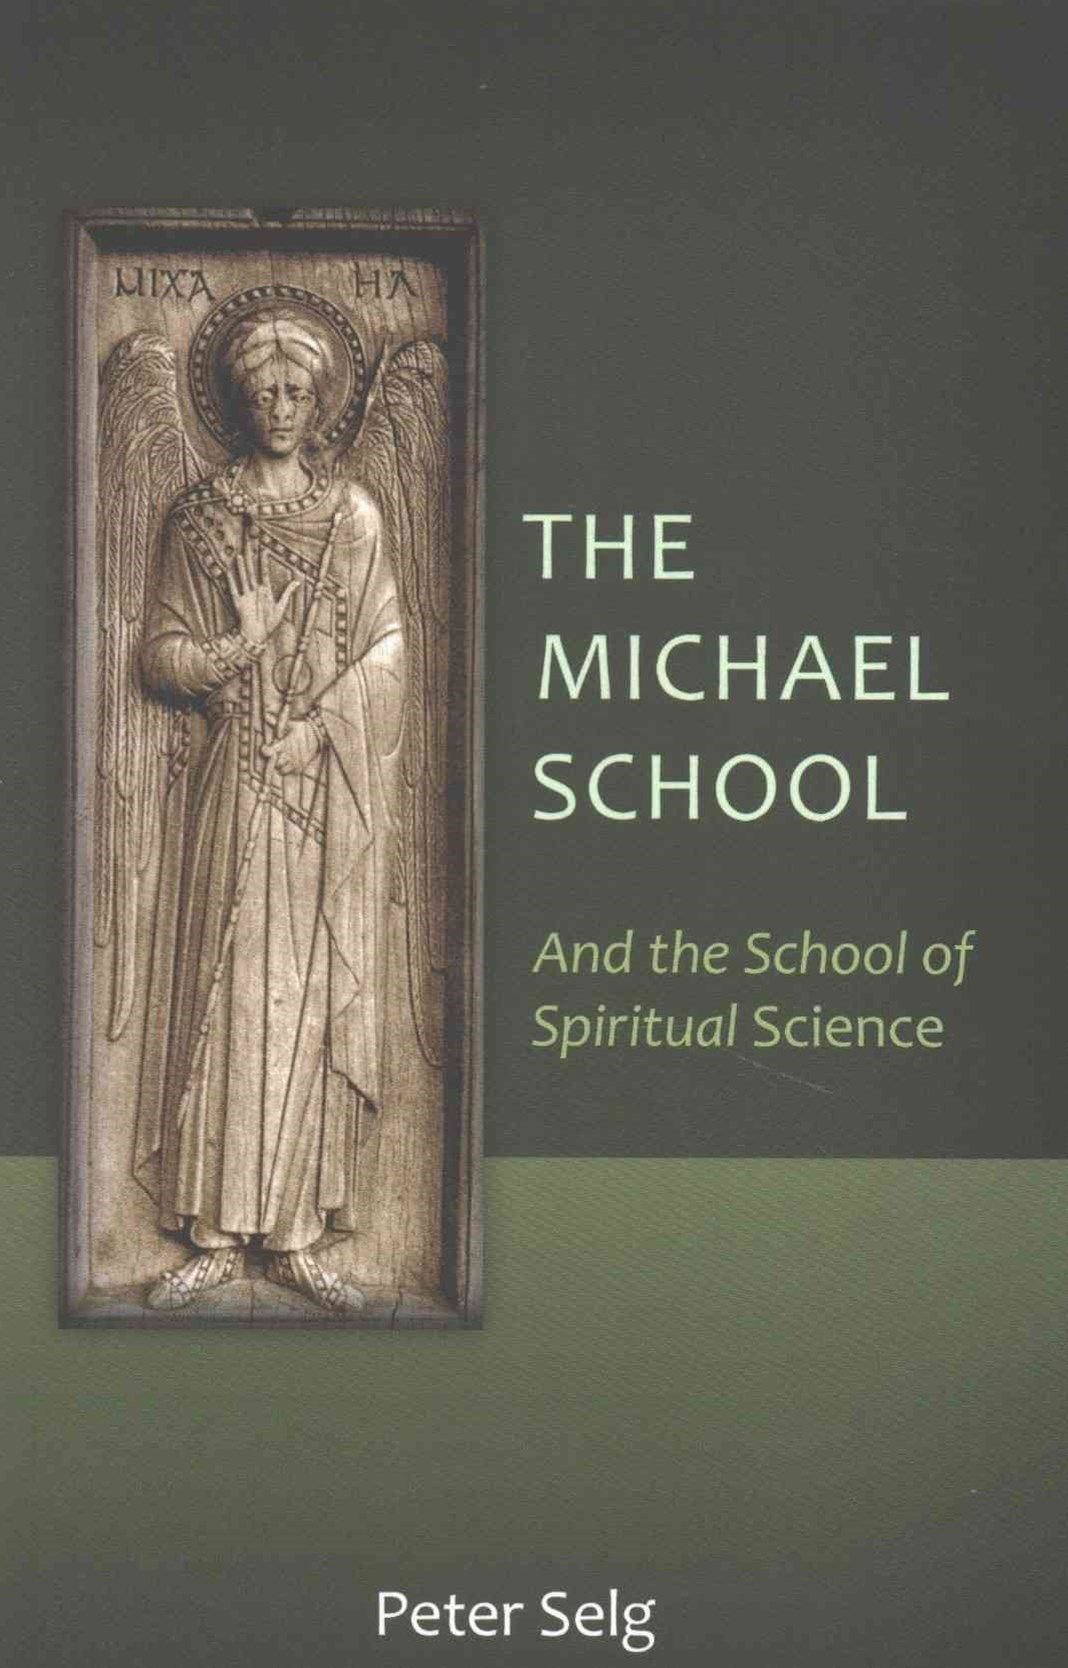 The Michael School